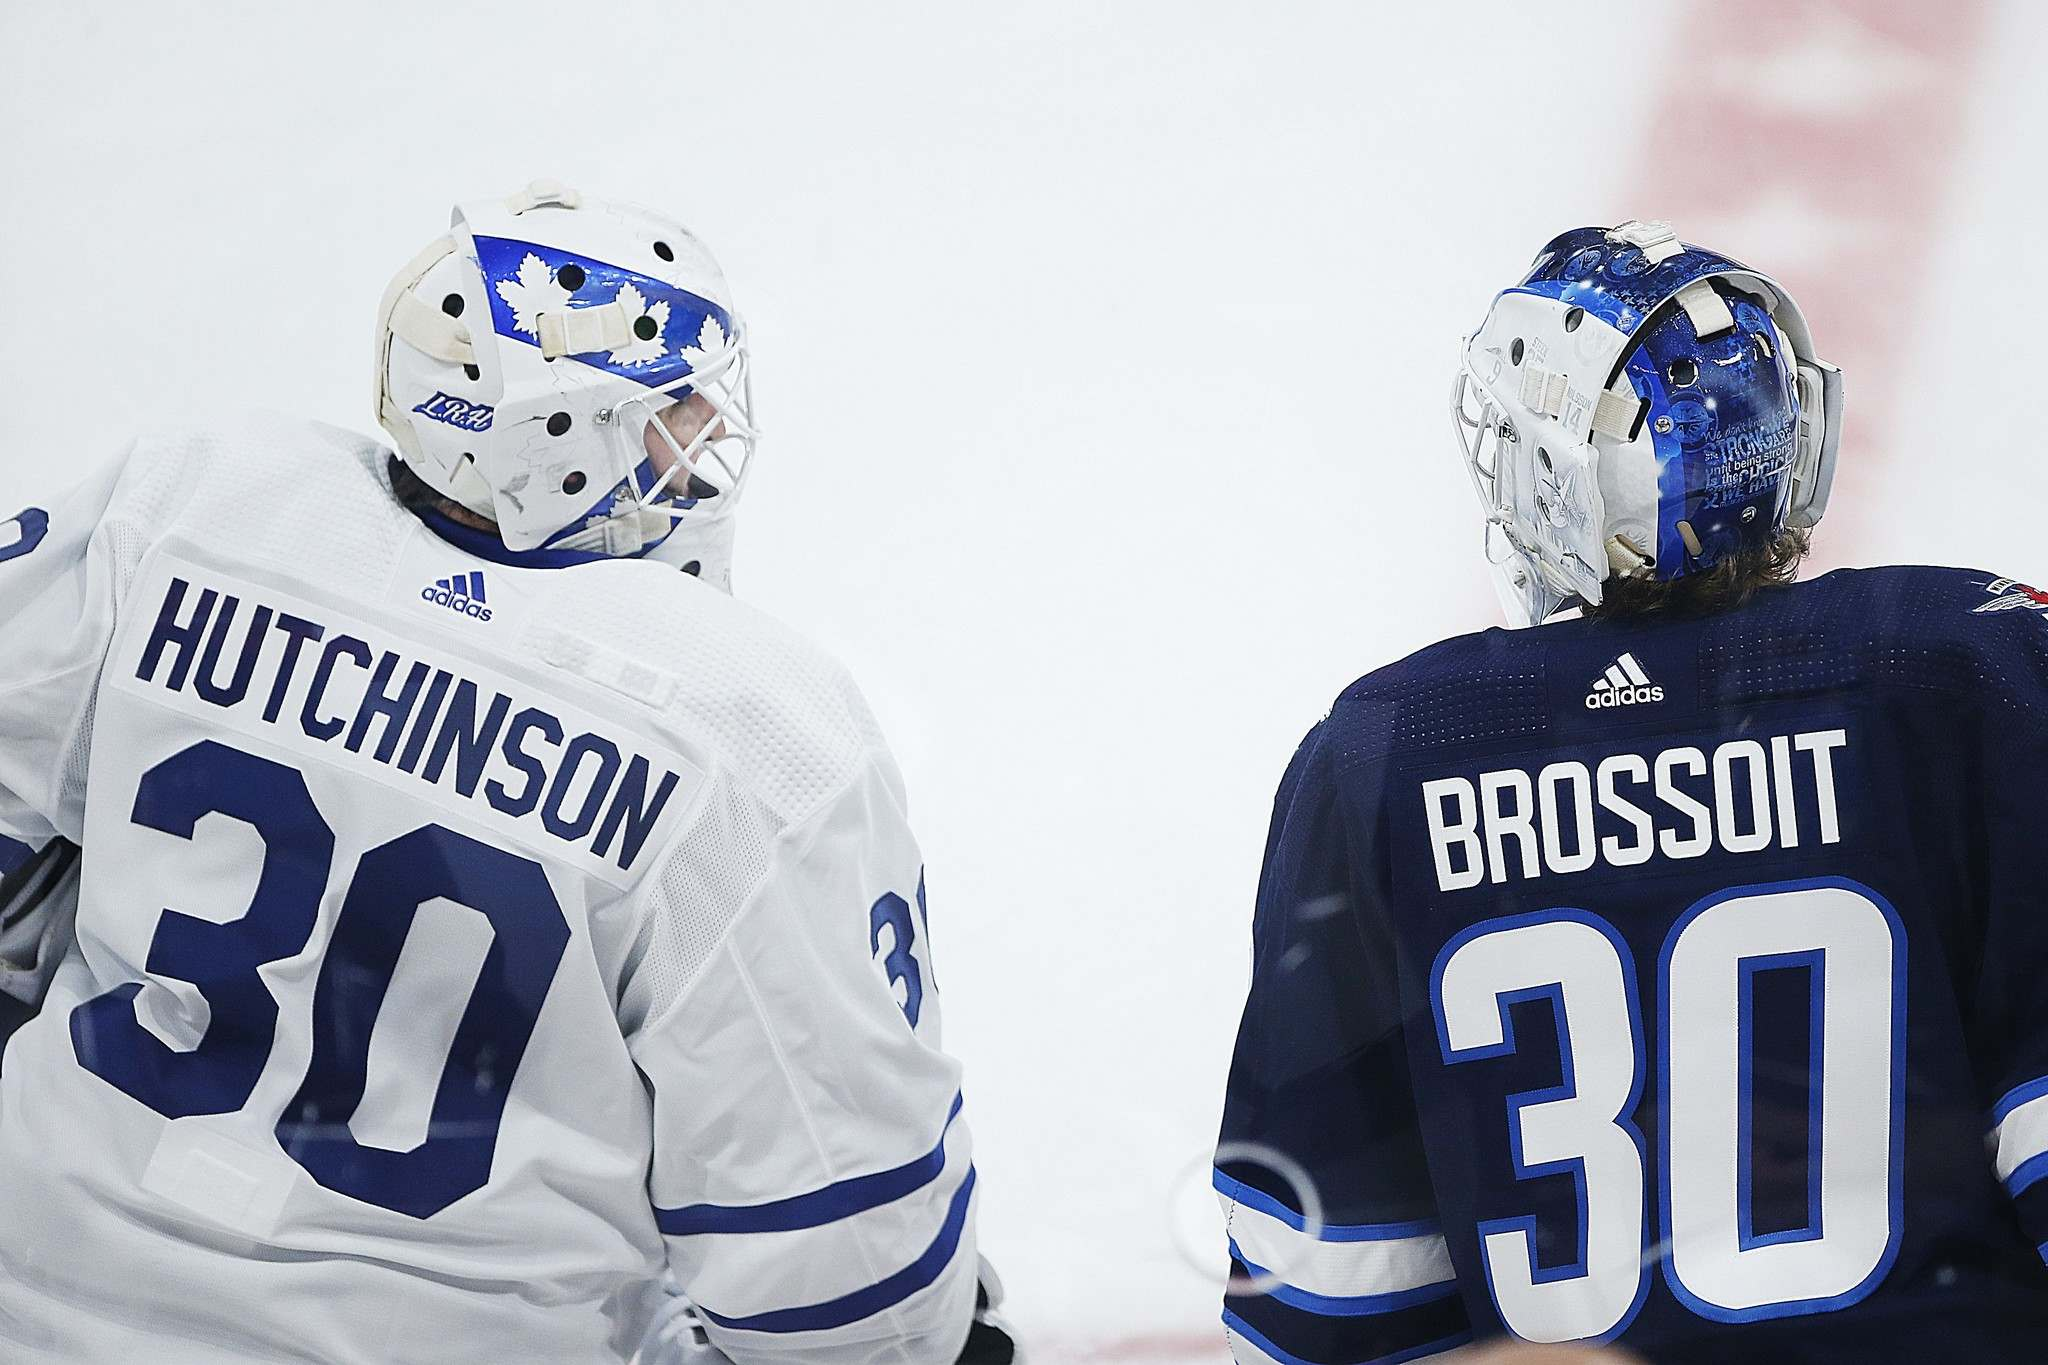 Hutchinson chats with Jets goaltender Laurent Brossoit during warm up Wednesday.